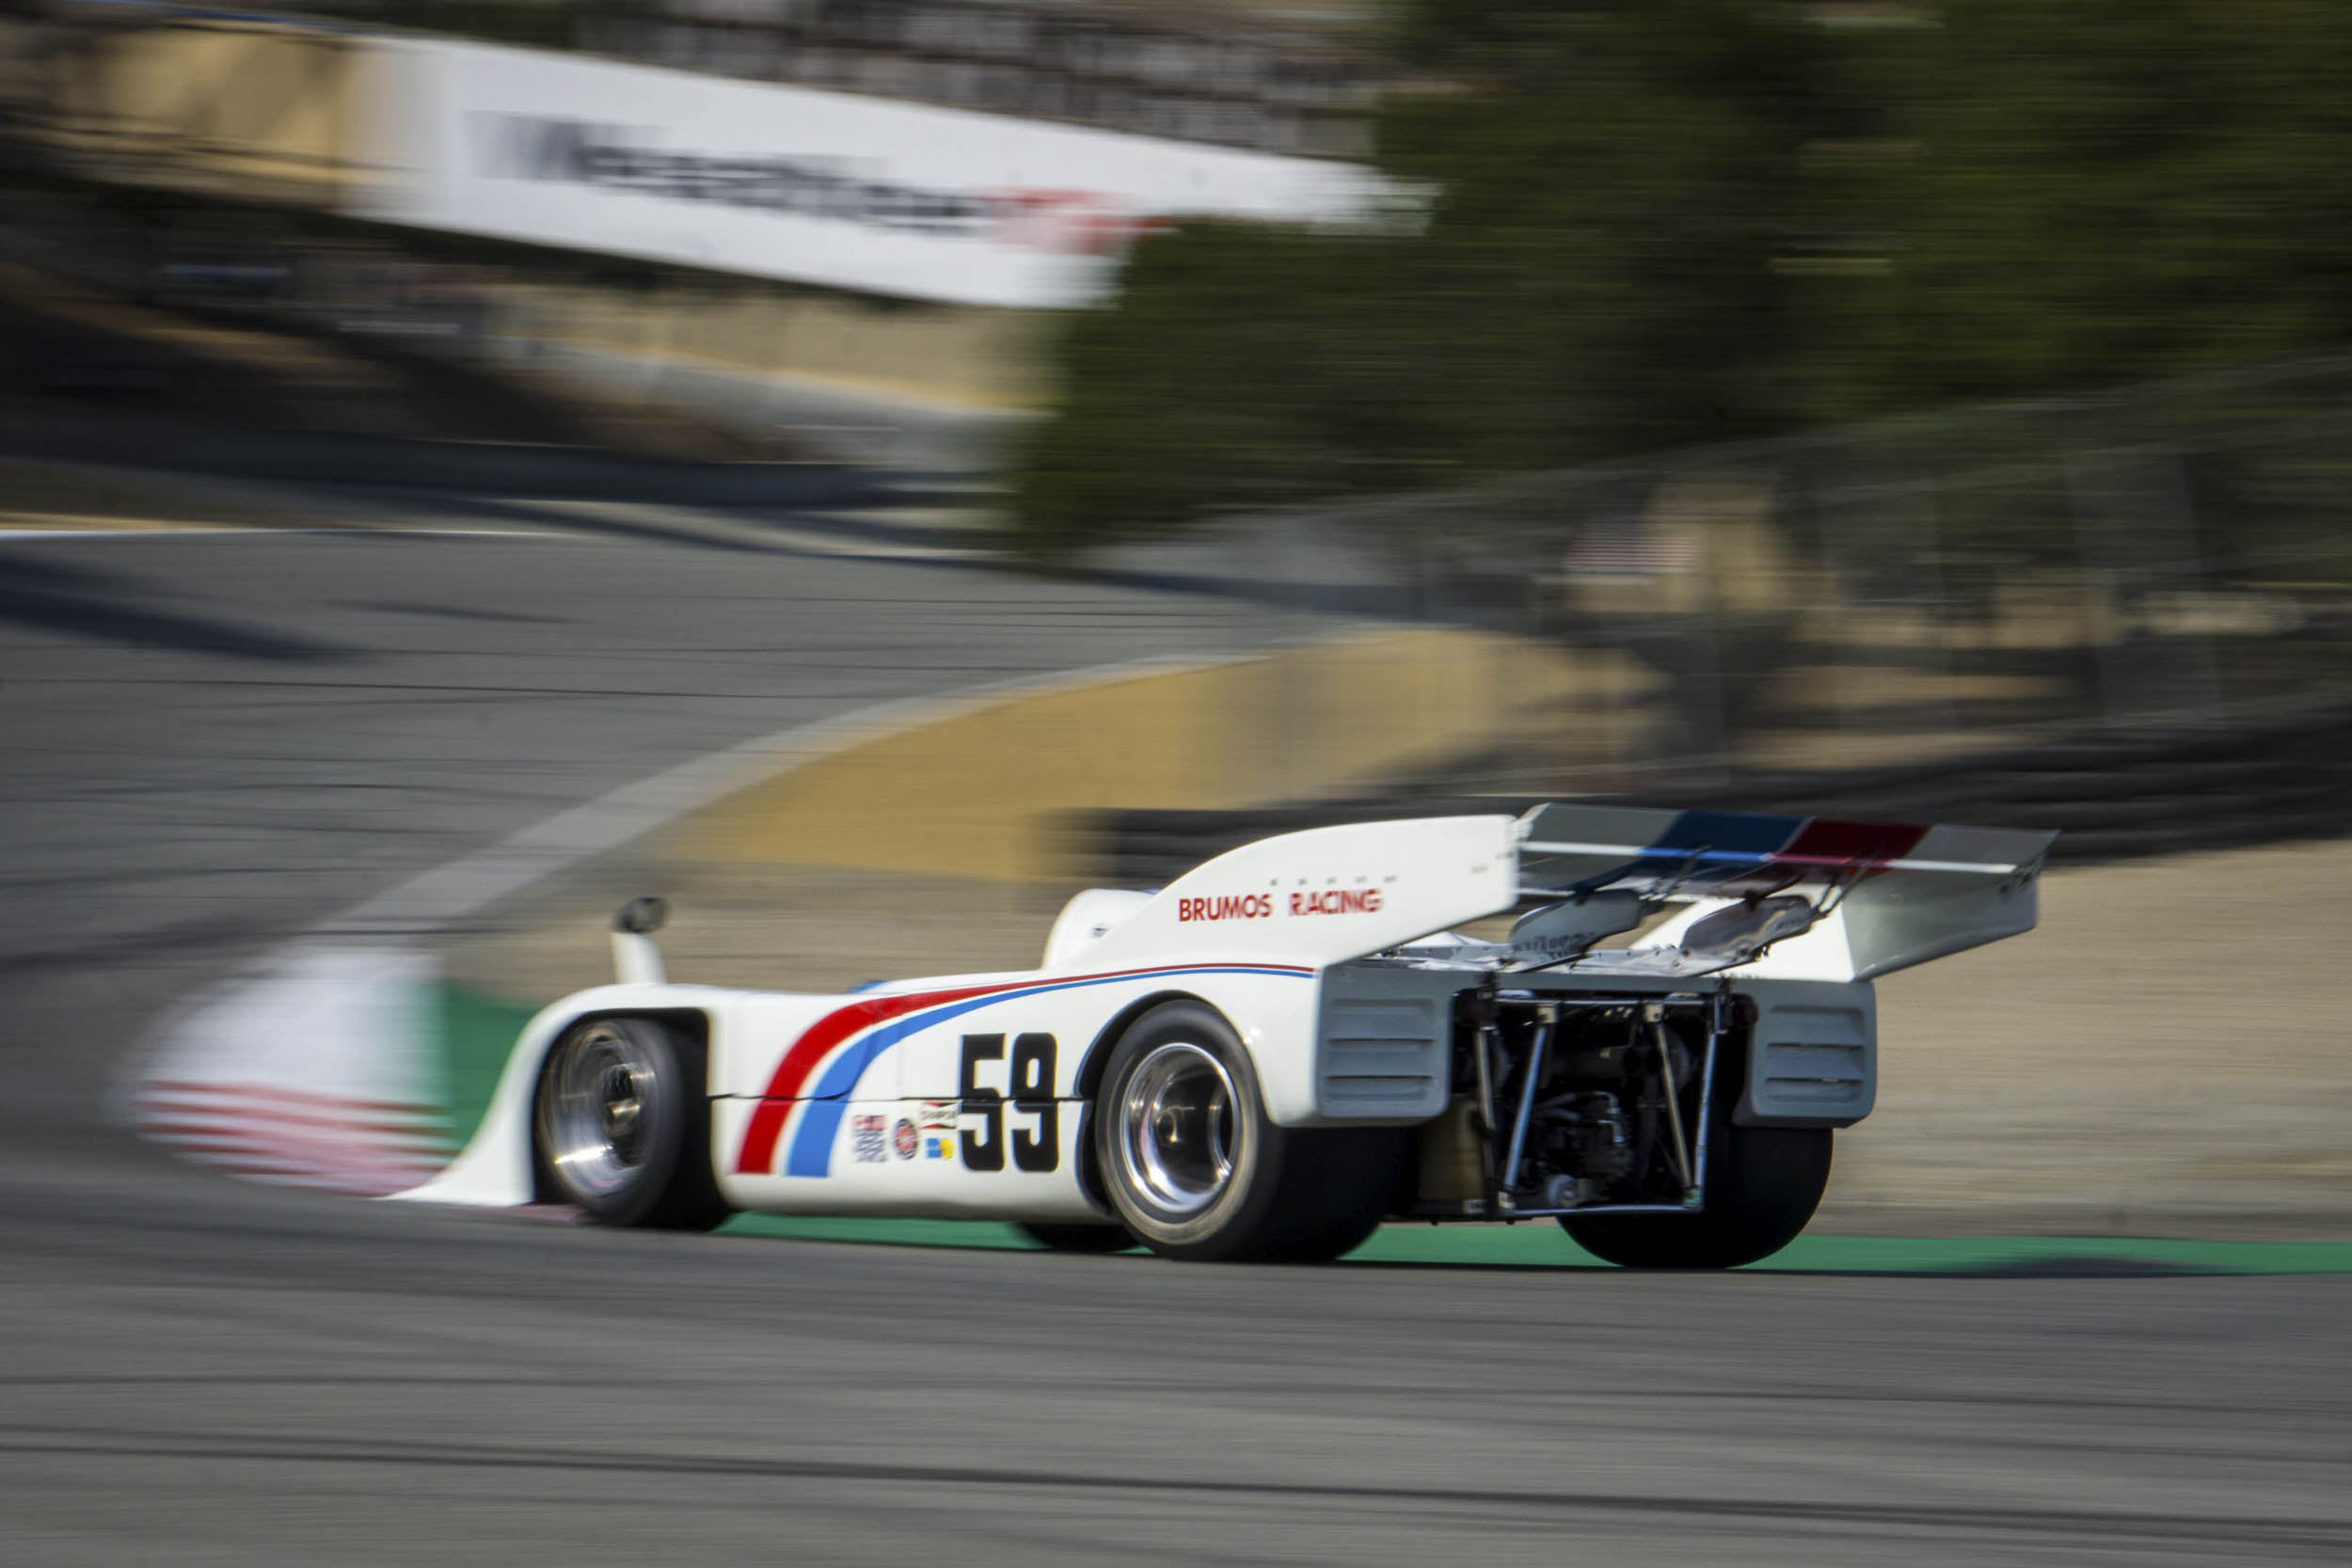 """Hurley Haywood was a chipper 23-year-old when he raced in the Brumos Porsche 917/10... 1250 horsepower… feet tickling the front nose of the car. """"It was a real handful to get your arms around that beast,"""" Haywood recalls, adding, """"I had to be nuts to drive that car."""" Here, the Brumos beast careens through the Corkscrew."""